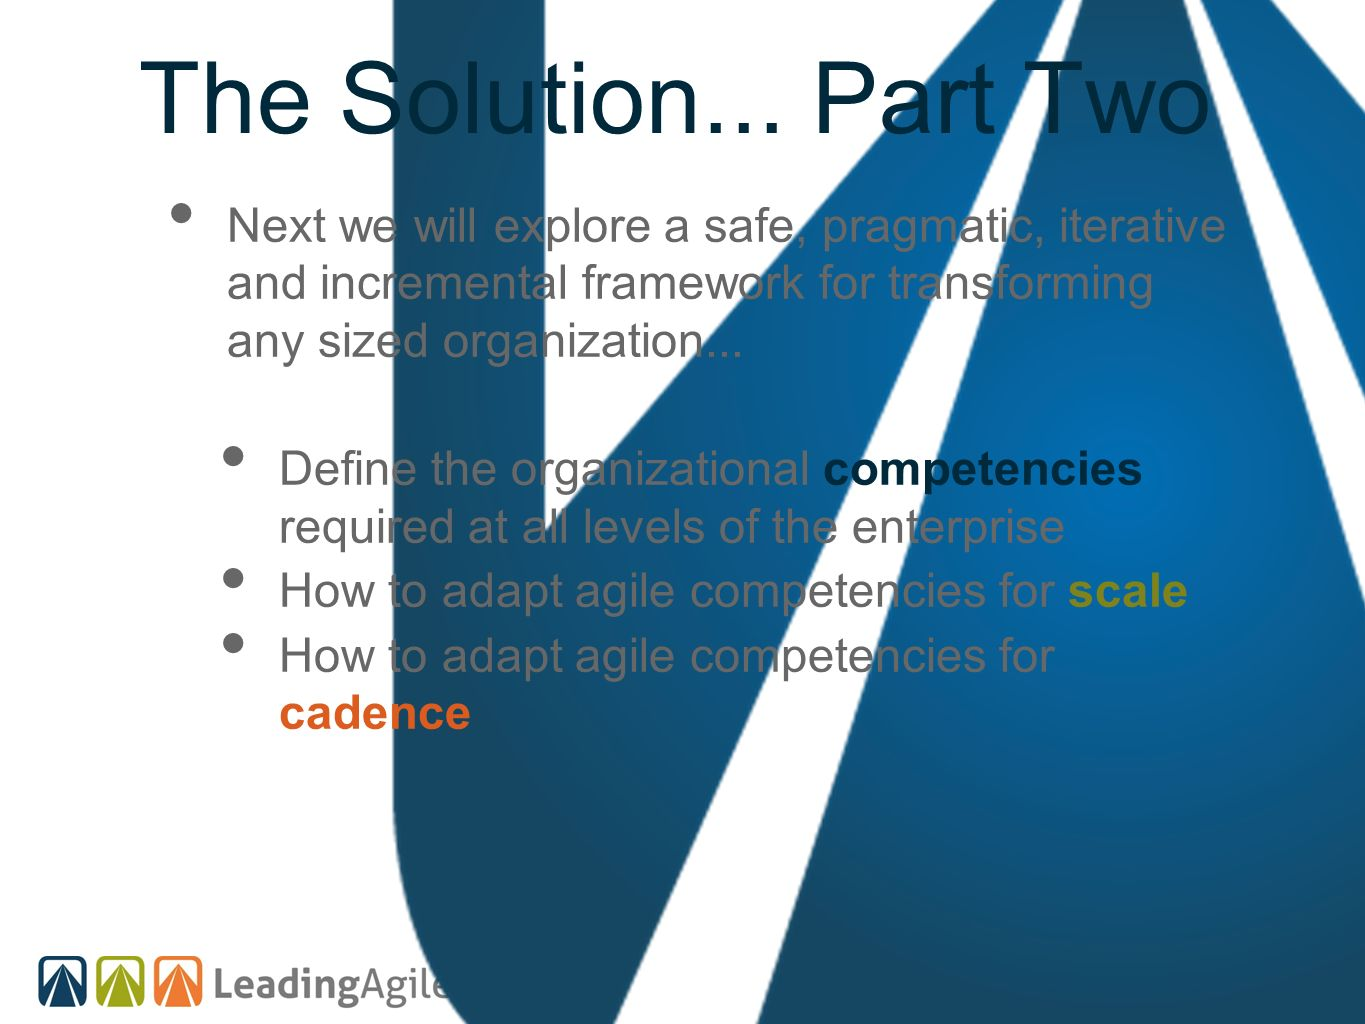 The Solution... Part Two Next we will explore a safe, pragmatic, iterative and incremental framework for transforming any sized organization...